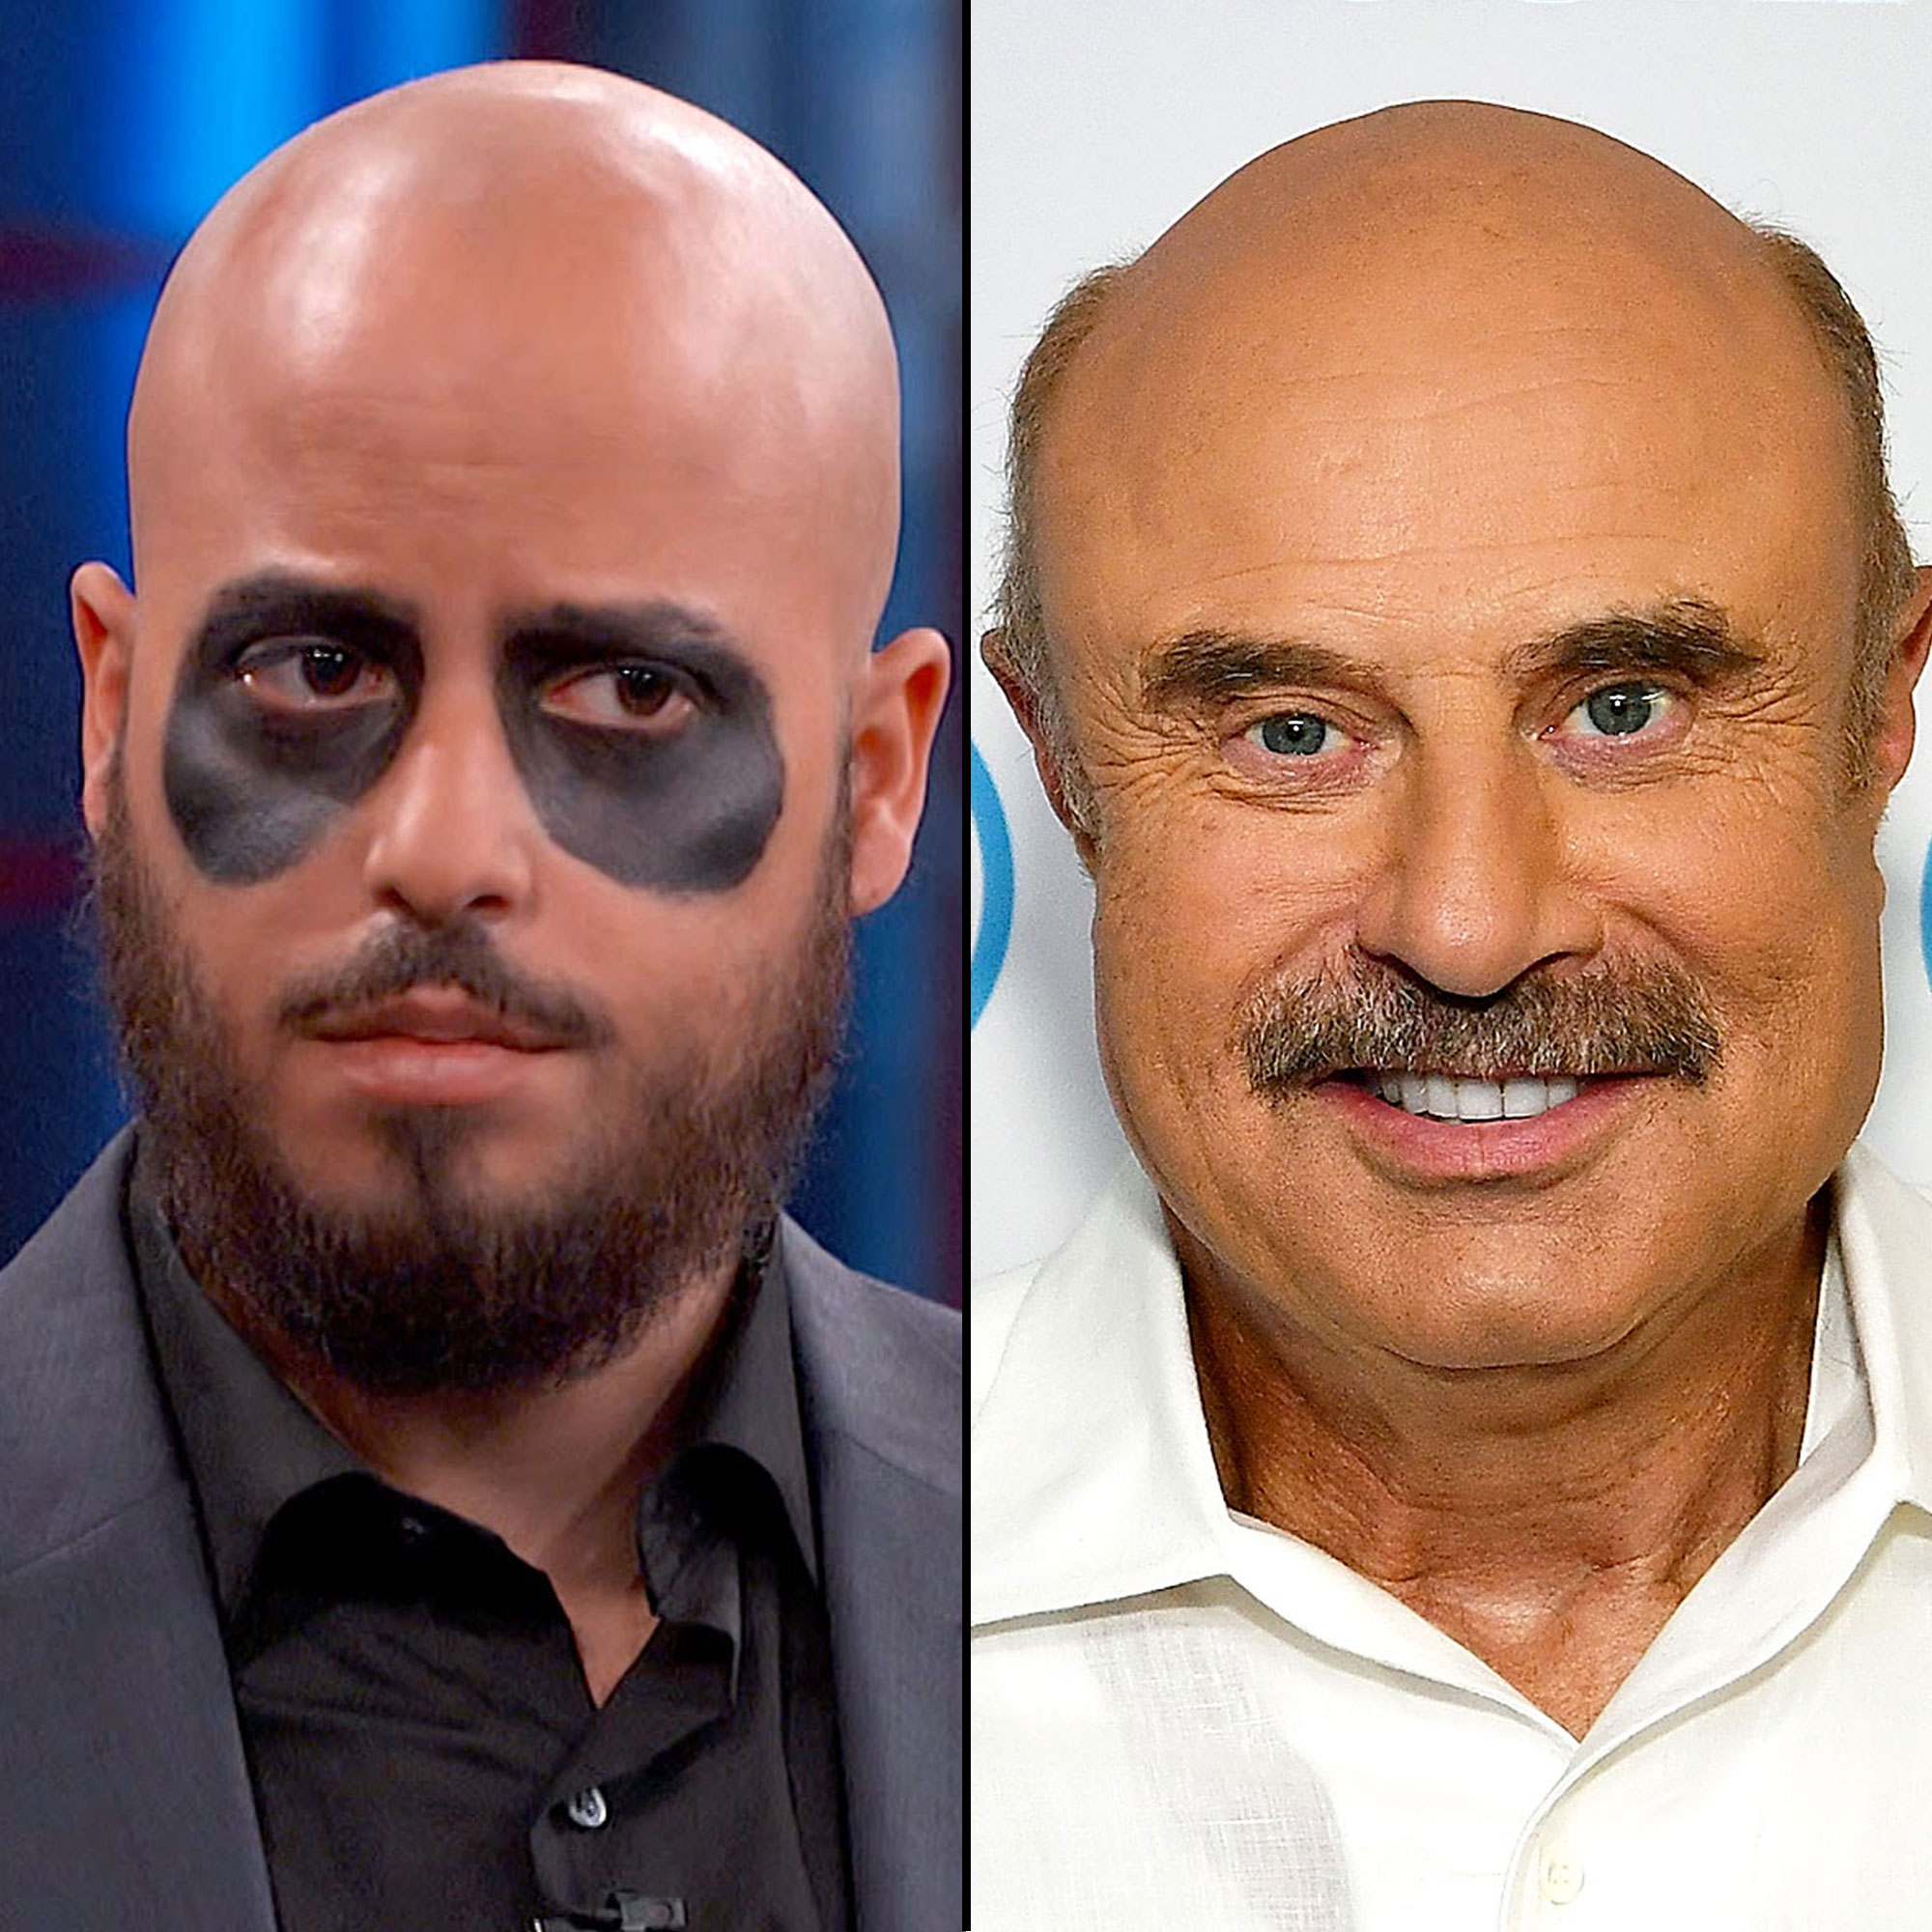 Dr  Phil' Show Guest Believes He's the Real Life Batman: